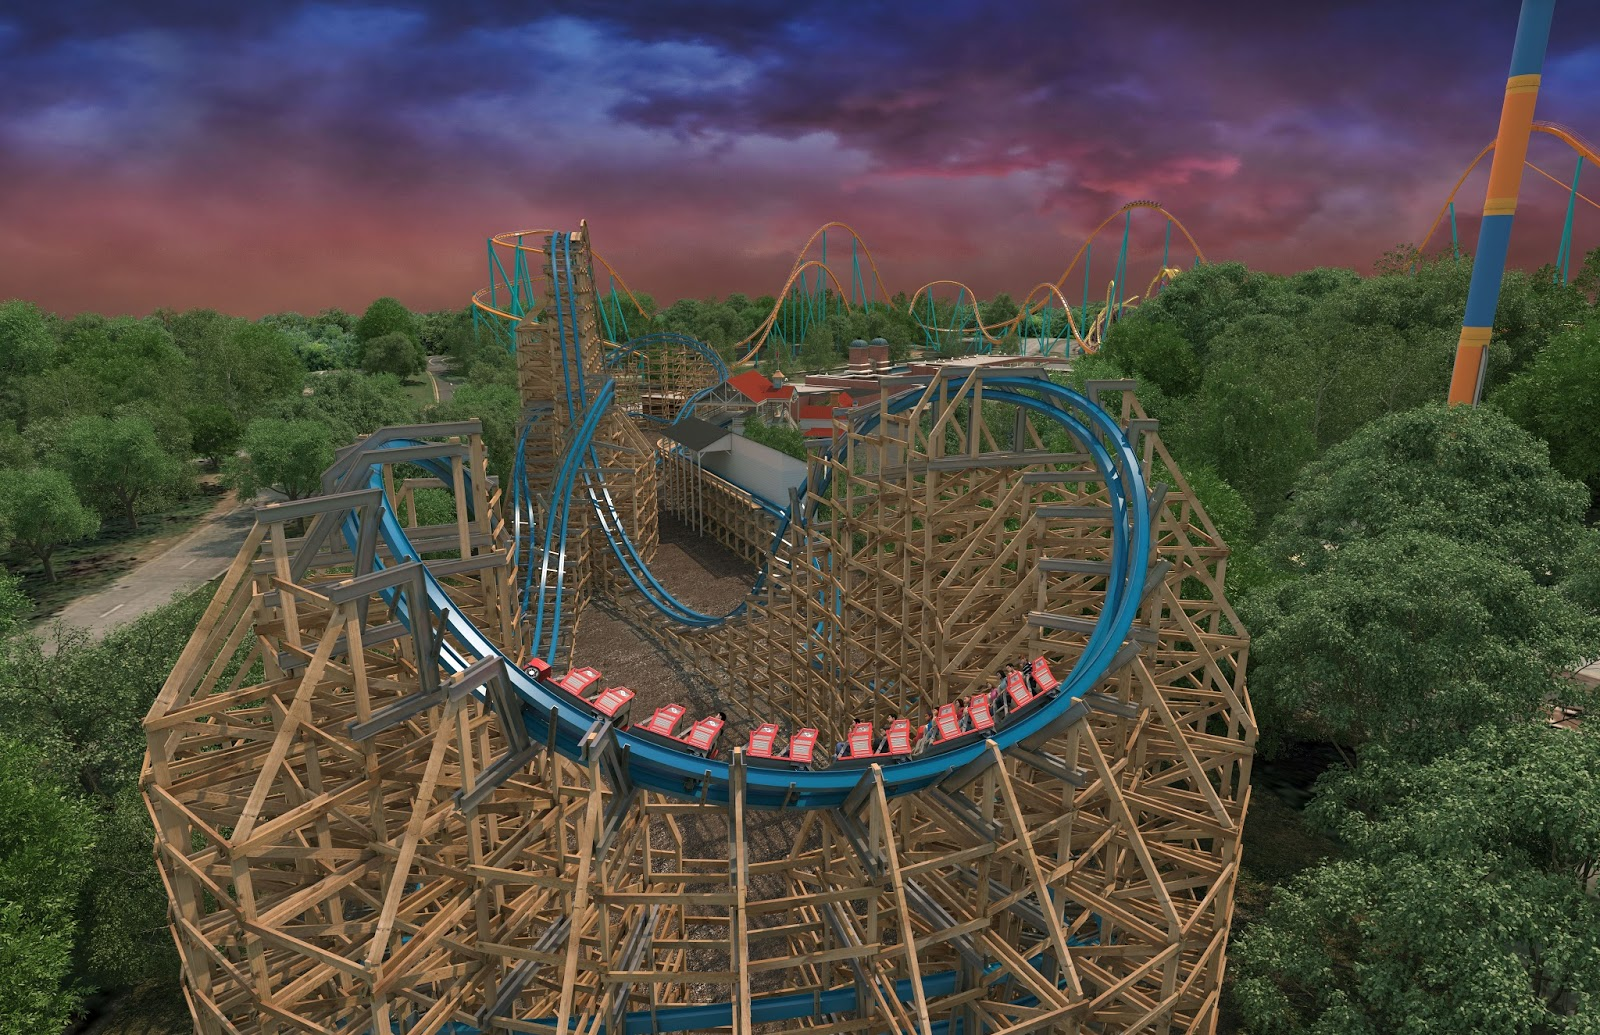 bcda36cc0f2991 Six Flags Parks 2018 New Attractions Confirmed - EVERY New Ride ...